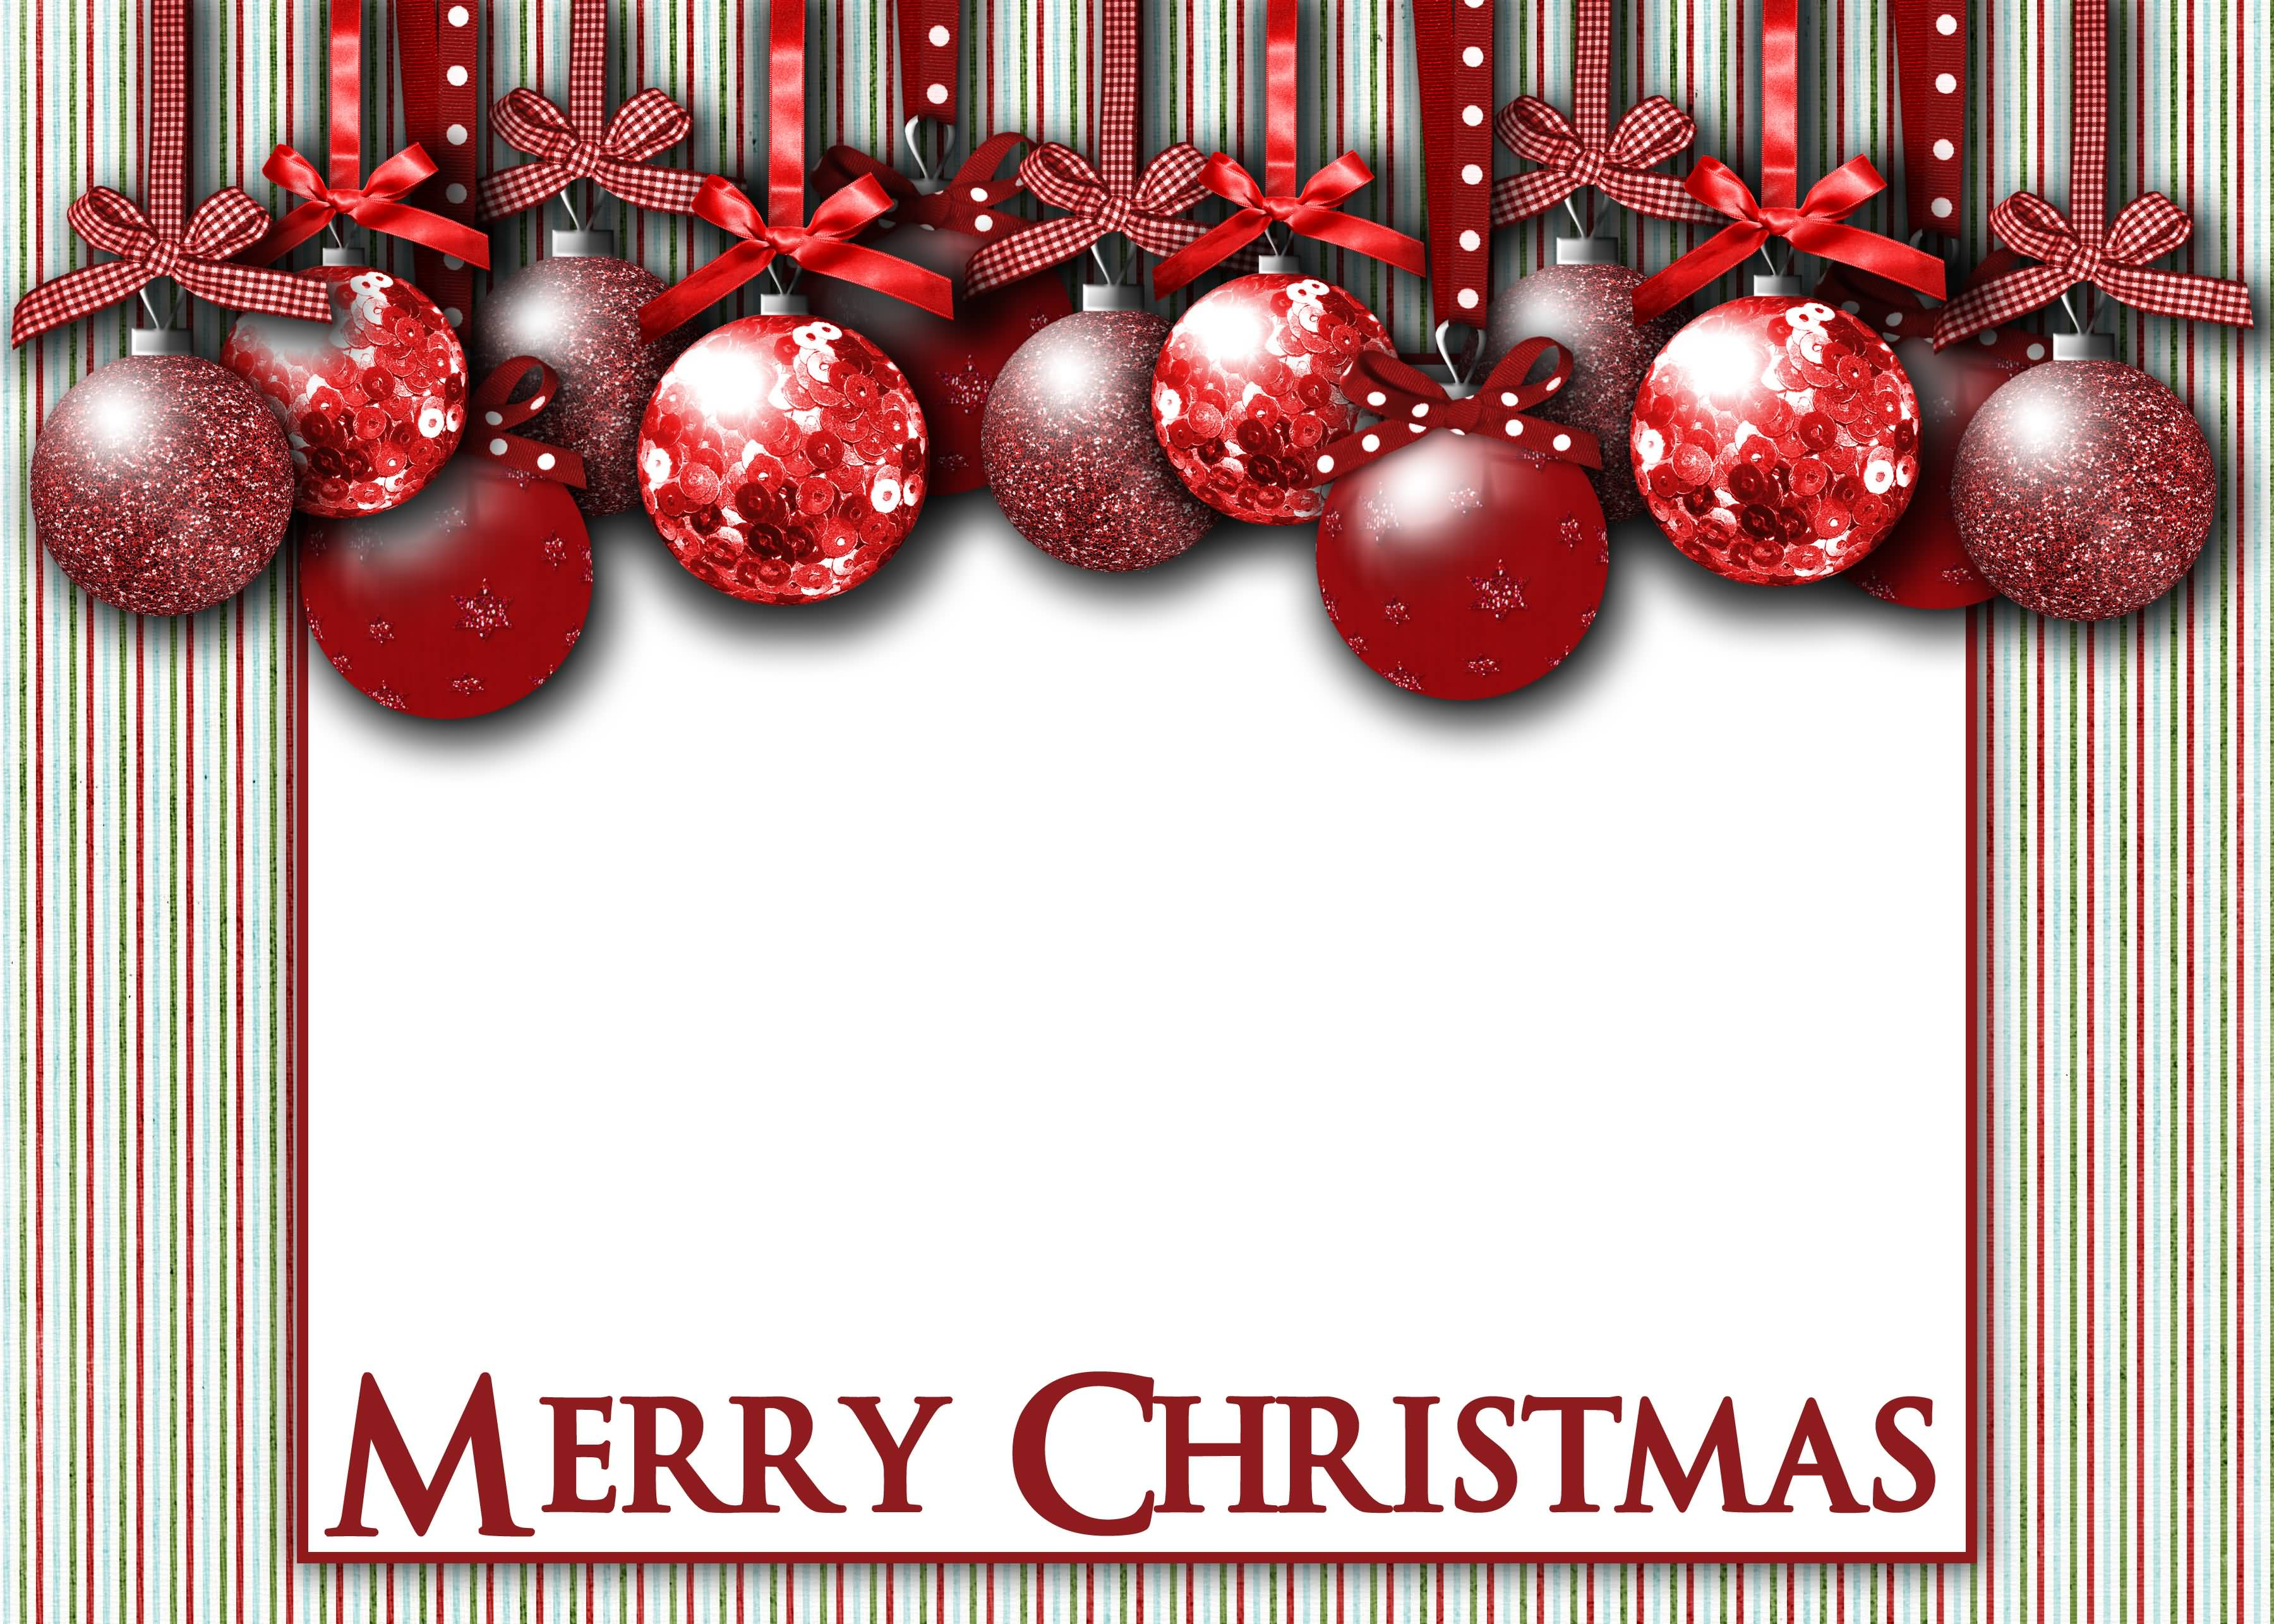 Merry Christmas Cards Template Image Picture Photo Wallpaper 14